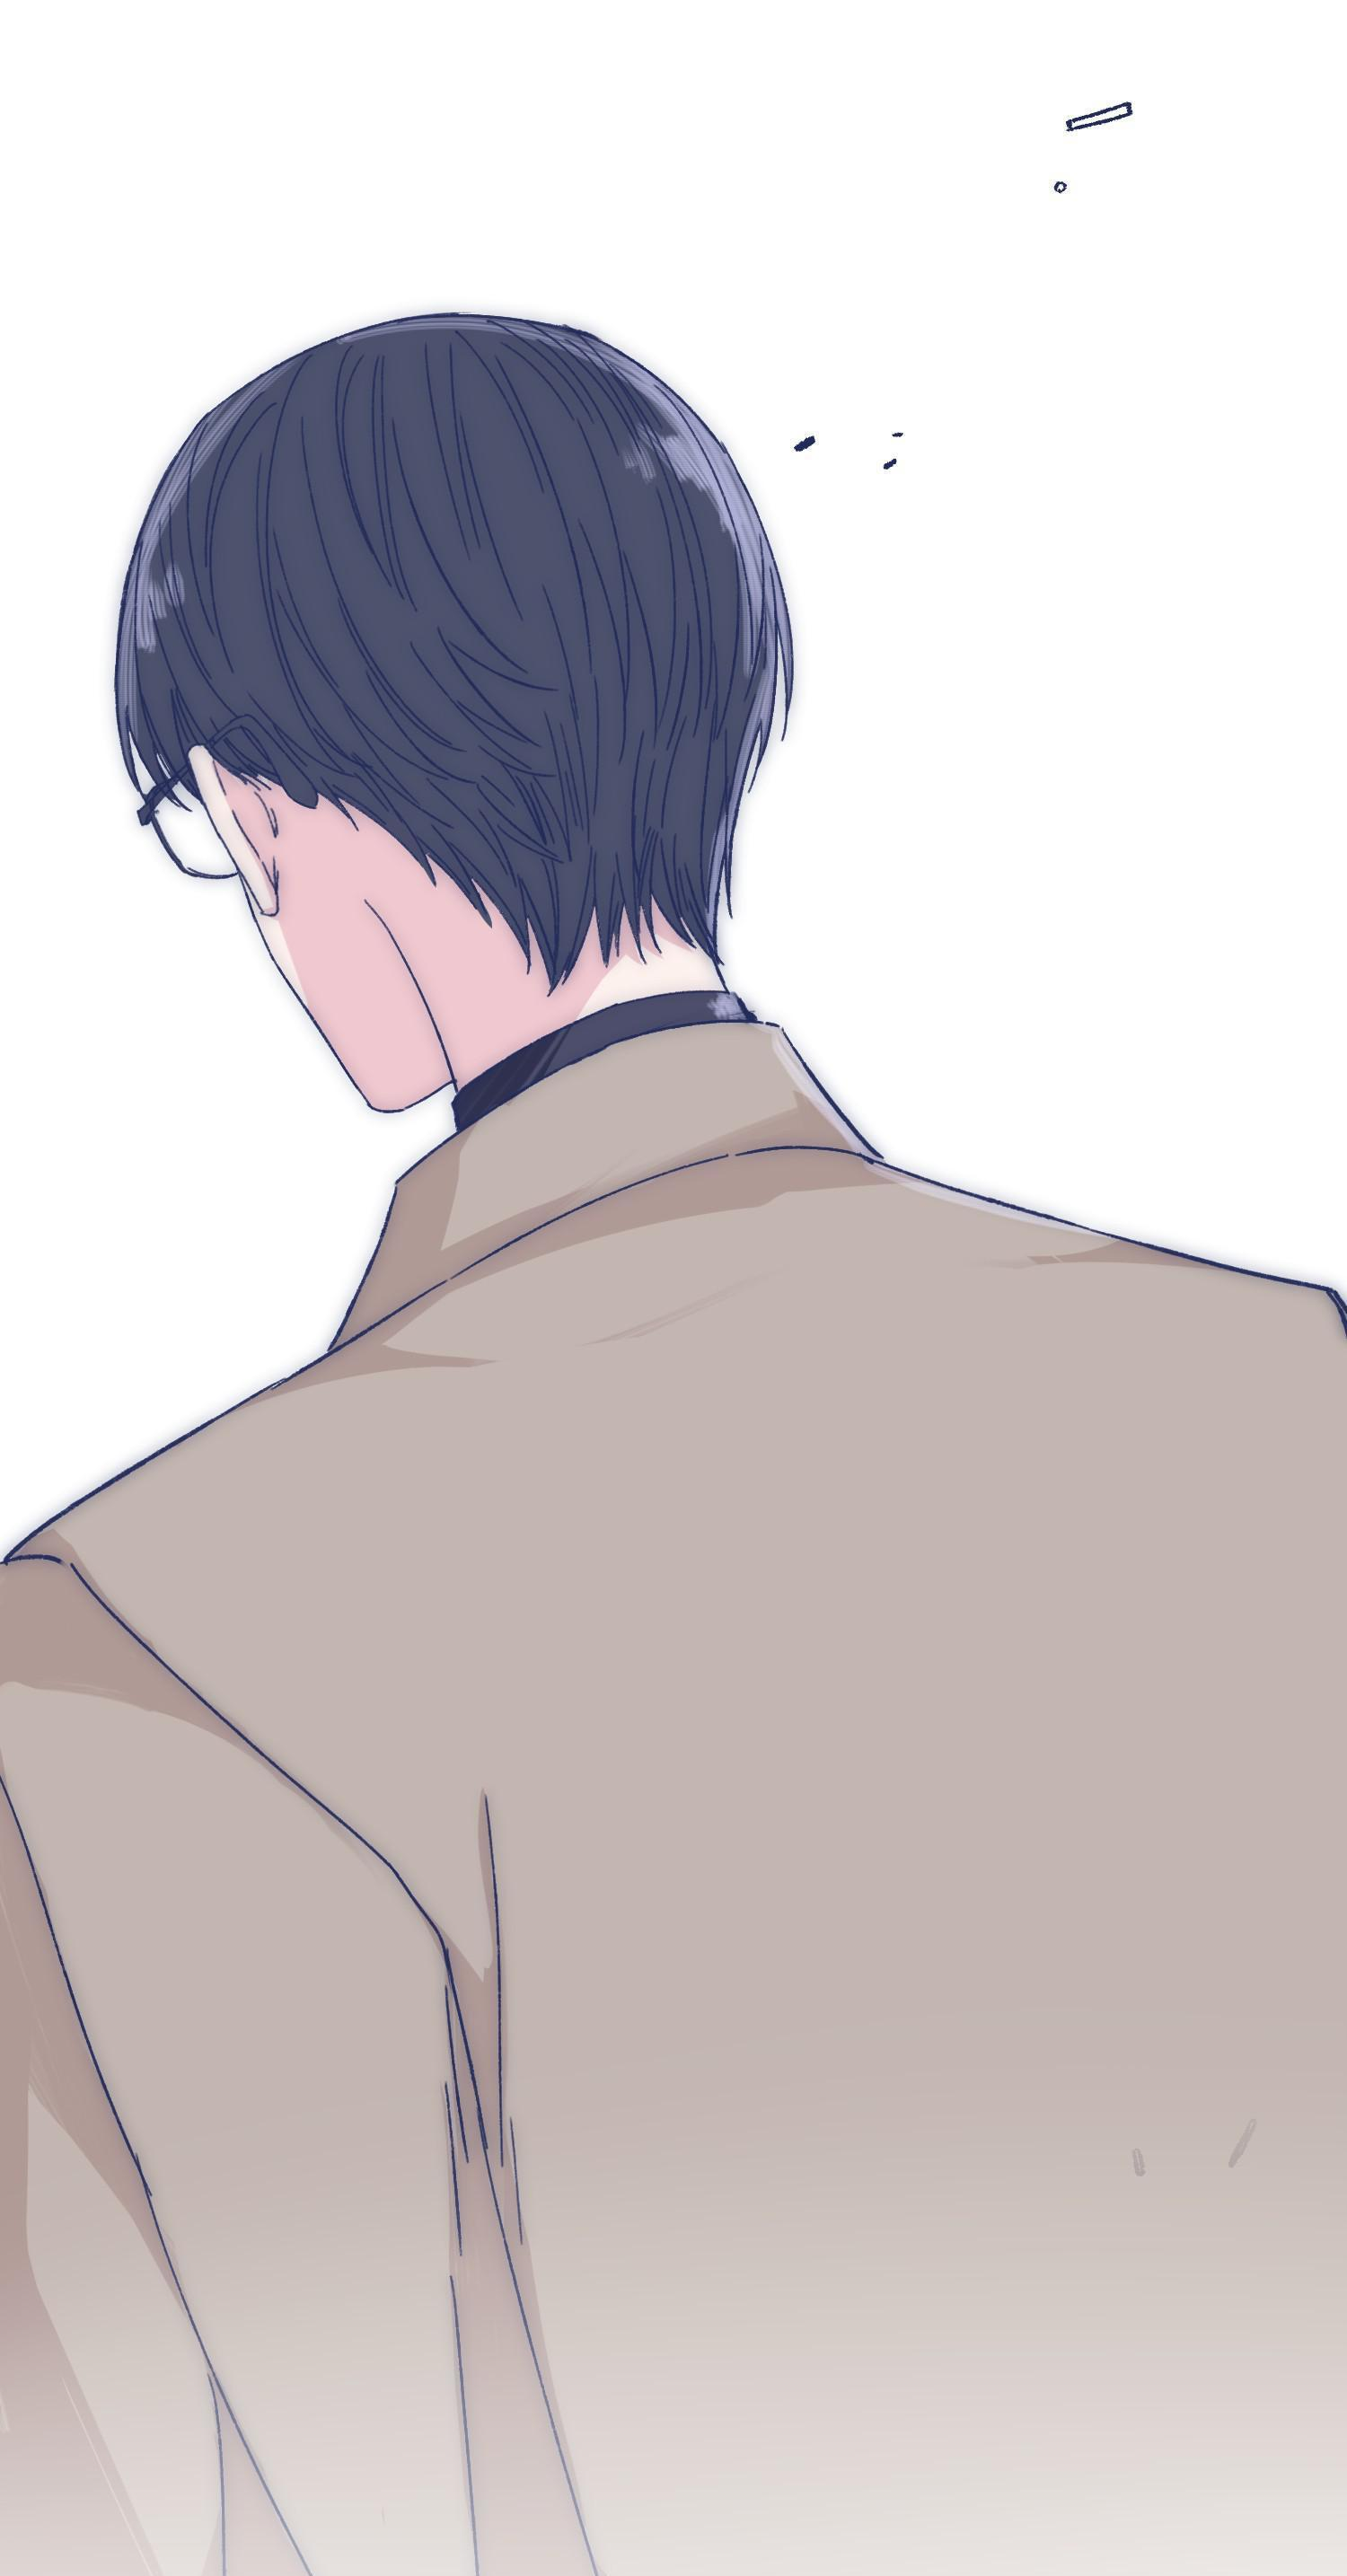 Offering My Neck To You Chapter 31: You Can't Even Protect Yourself page 17 - Mangakakalots.com